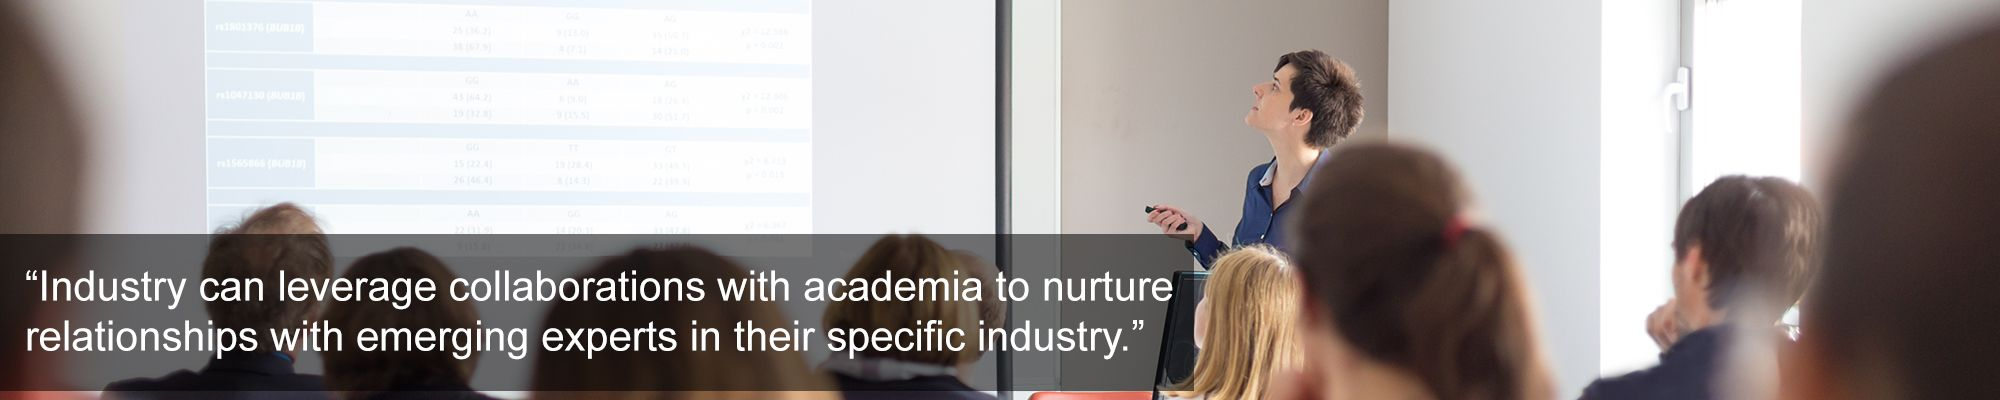 industry can leverage these collaborations with academia to nurture relationships with emerging experts in their specific industry